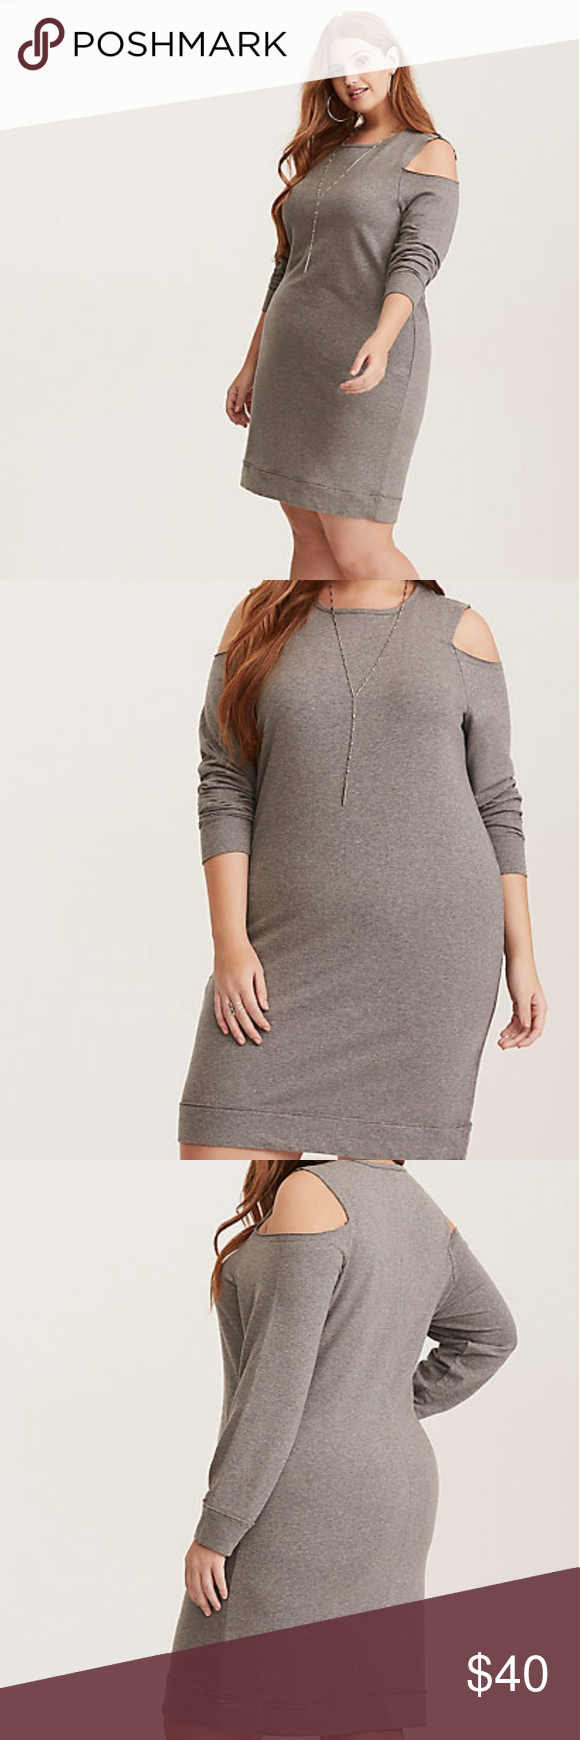 b5228be0ac5 Grey French Terry Cold Shoulder Sweatshirt Dress We re calling it now  this  will